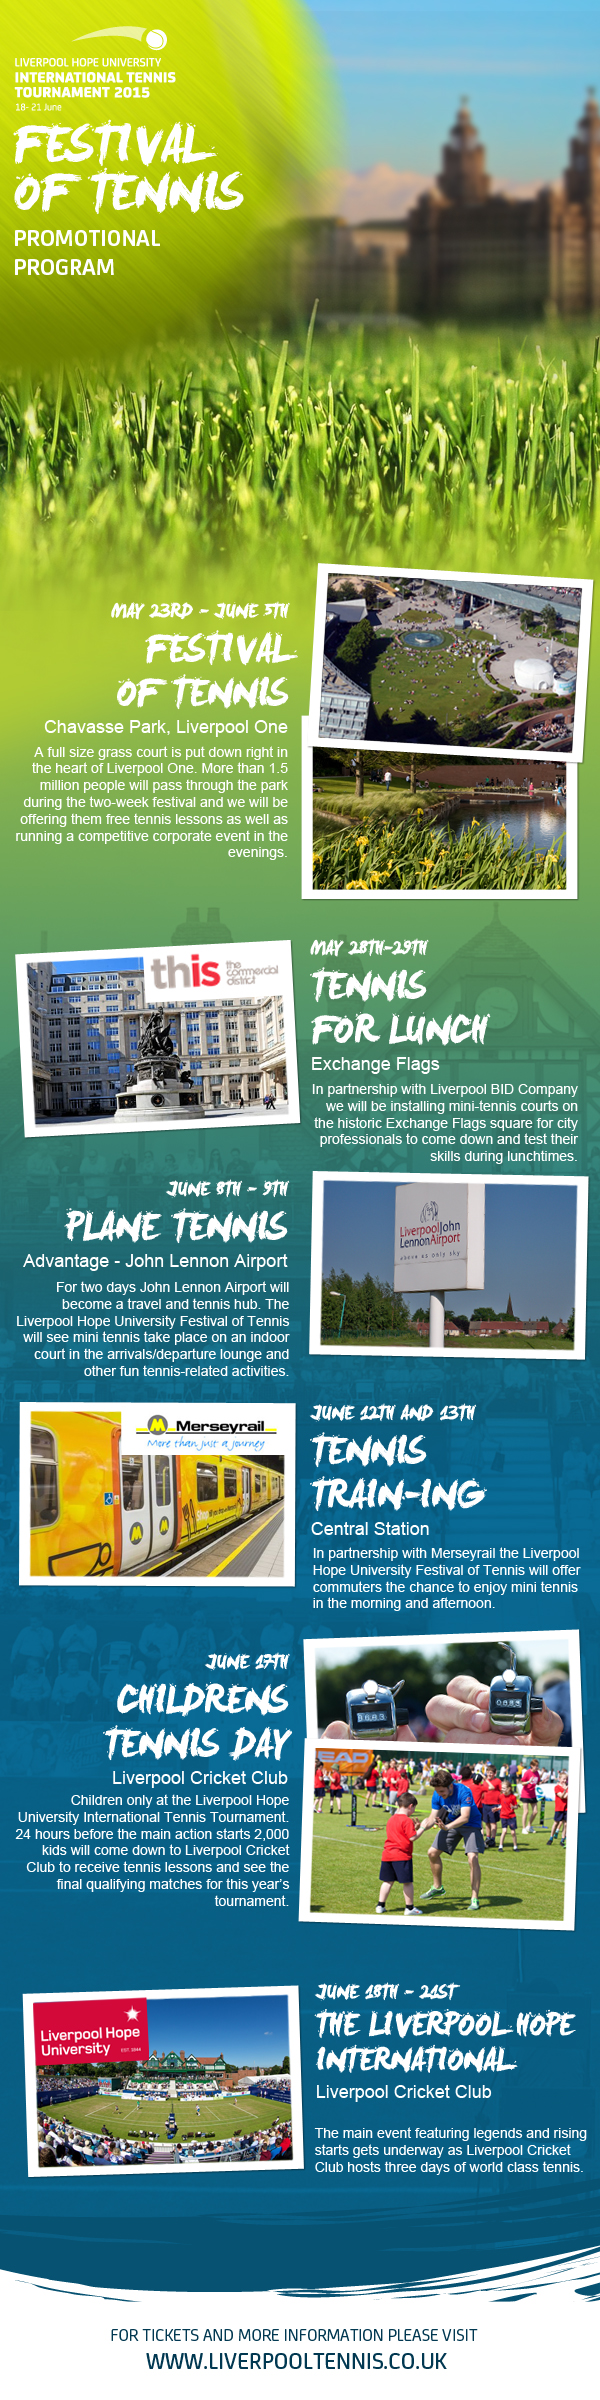 Liverpool Tennis - promotional program